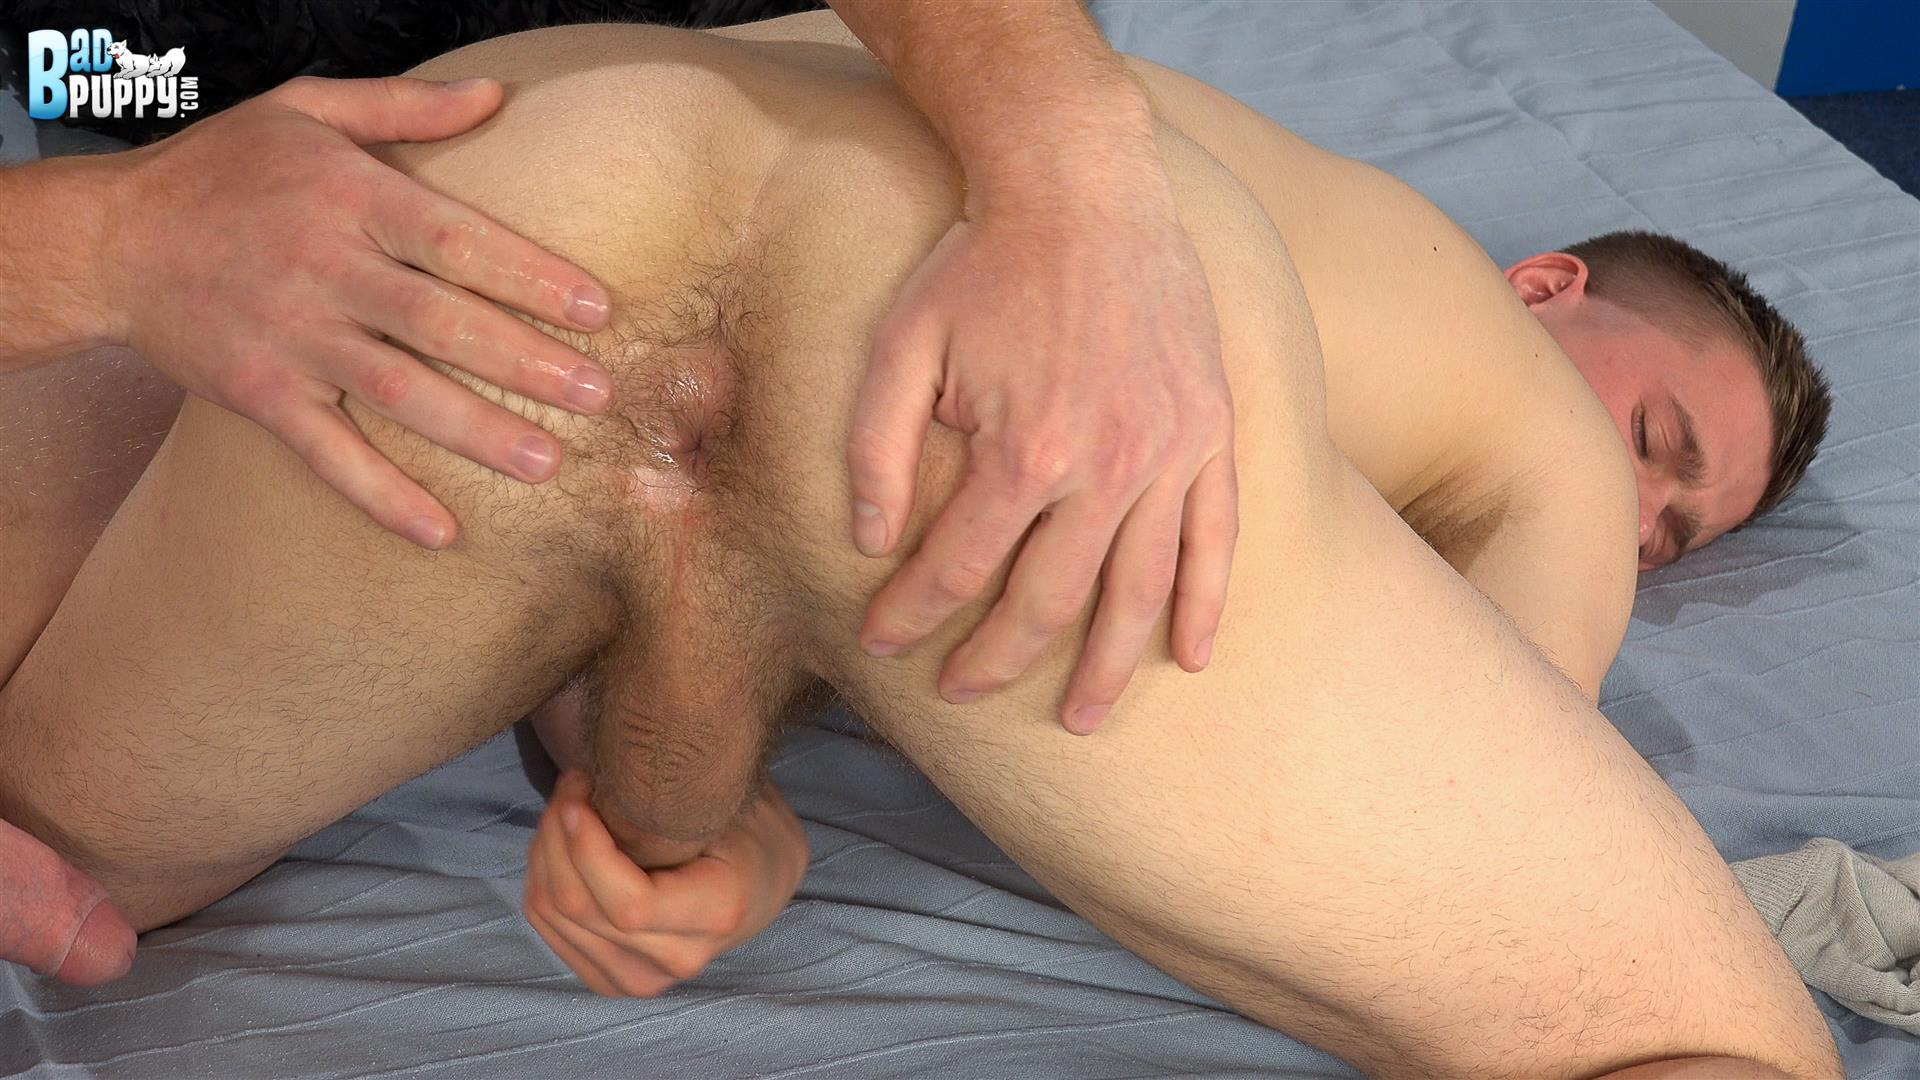 Badpuppy-Tom-Vojak-and-Peter-Filo-Straight-Redheaded-Guy-With-Big-Uncut-Cock-Fucking-Buddy-Amateur-Gay-Porn-19 Straight Ginger With A Big Uncut Cock Fucking His Best Friend